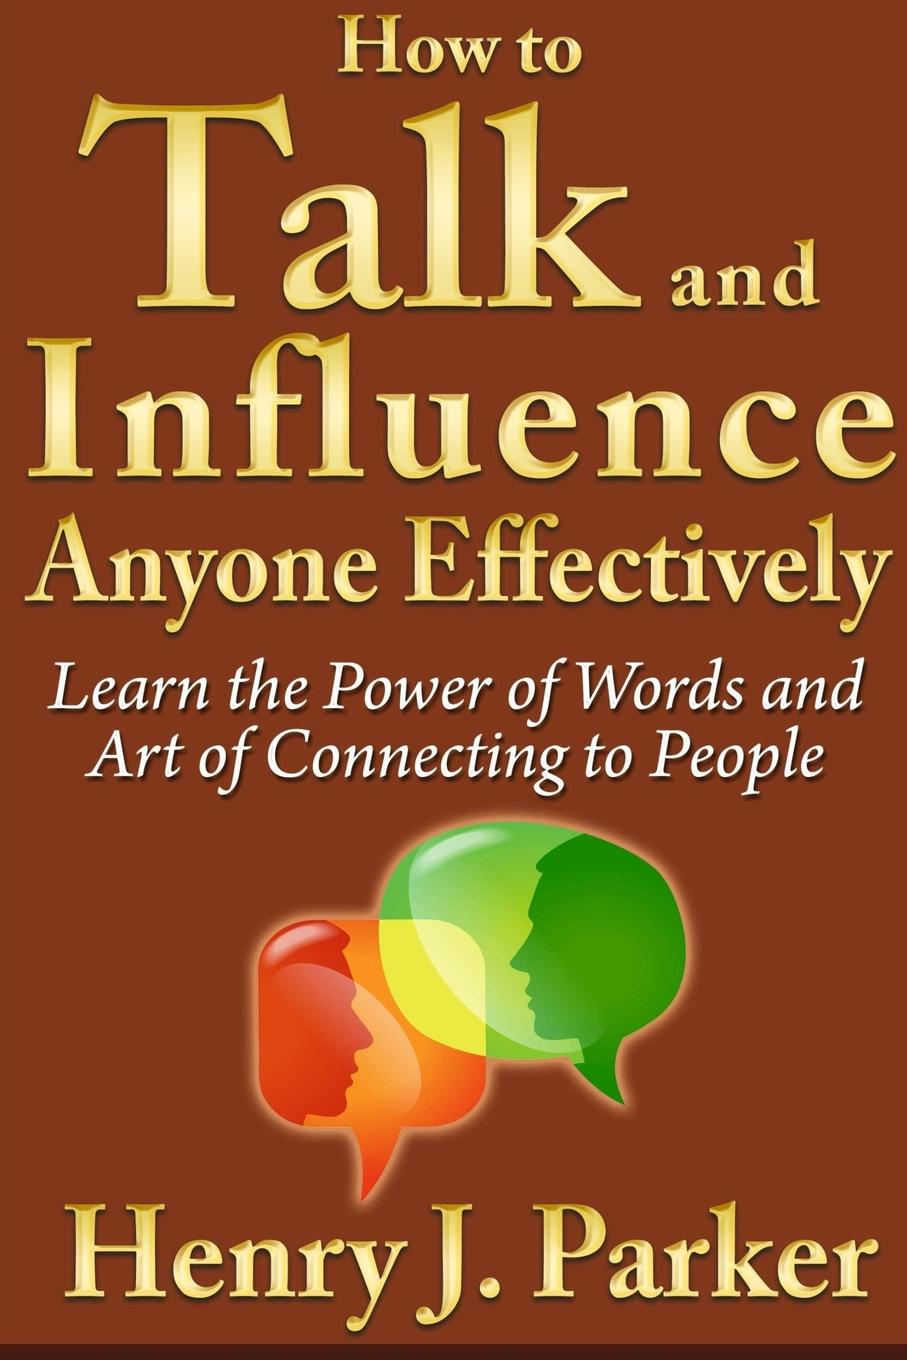 Henry J. Parker How to Talk and Influence Anyone Effectively. Learn the Power of Words and Art of Connecting to People